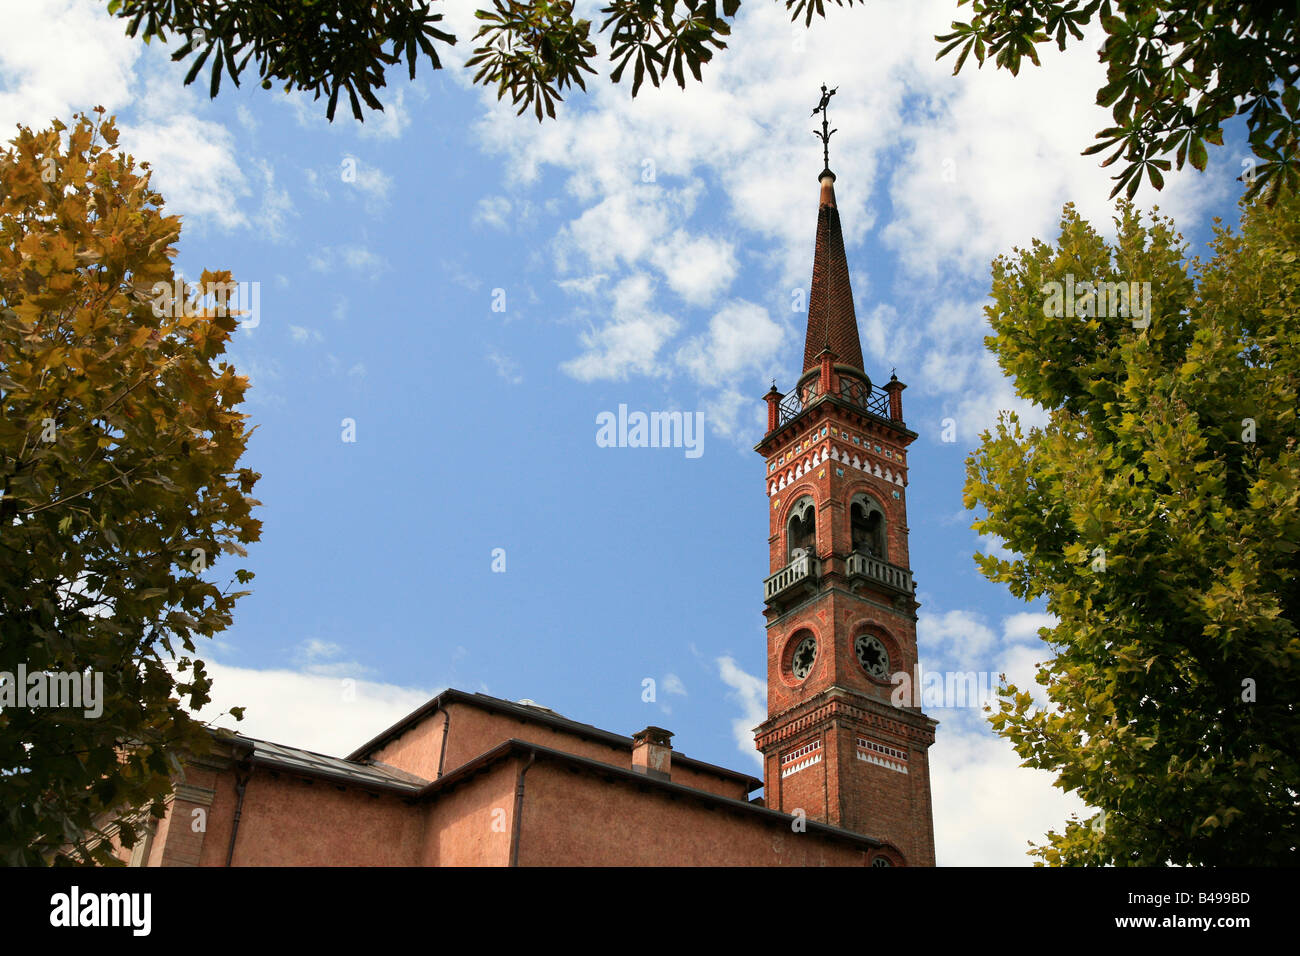 Tall church spire in medieval part of town in Cuneo Piemonte Italy - Stock Image